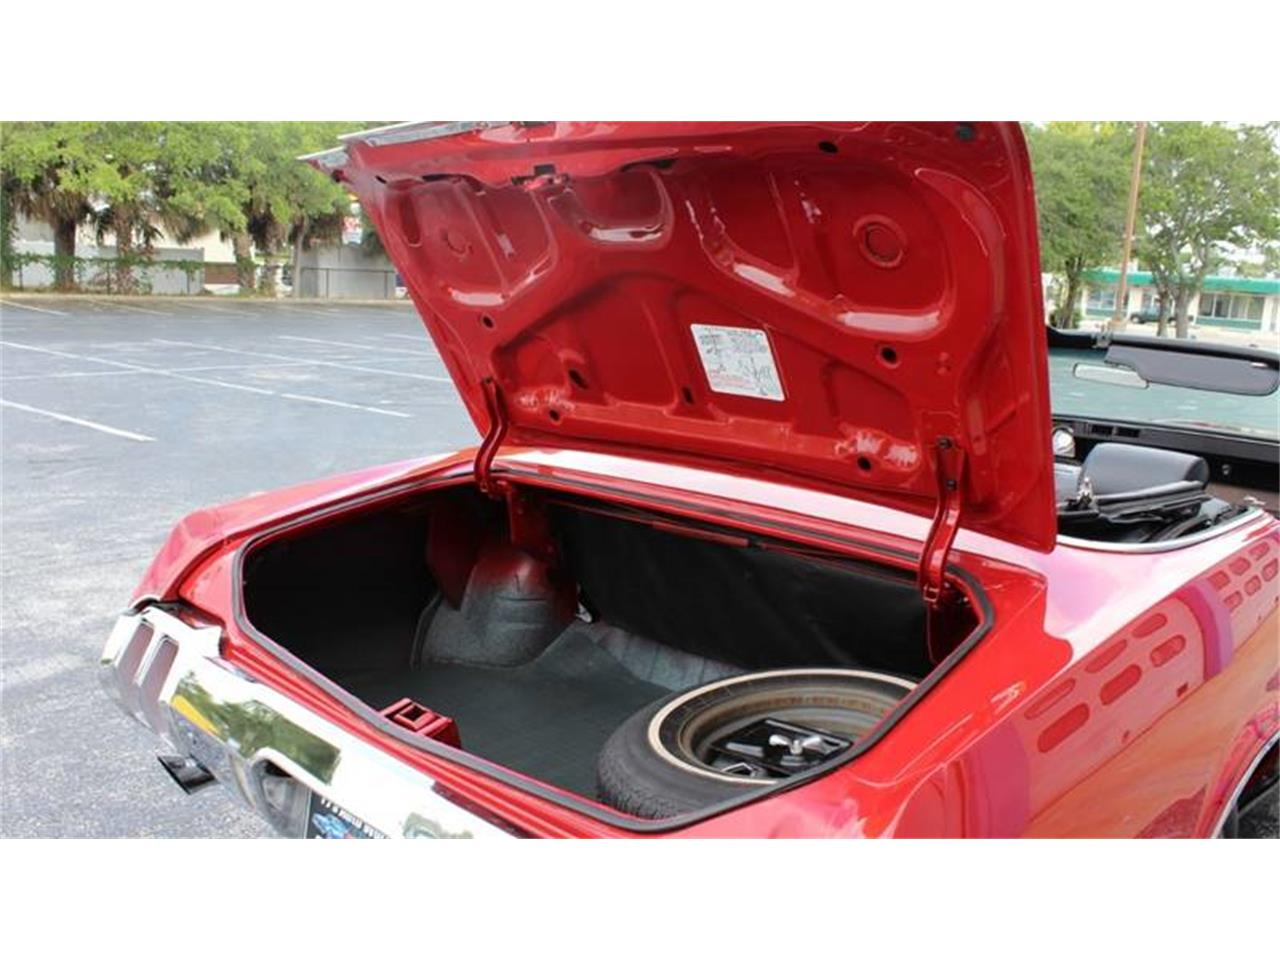 Large Picture of Classic '70 Oldsmobile Cutlass located in Clearwater Florida - $32,900.00 Offered by PJ's Auto World - Q478